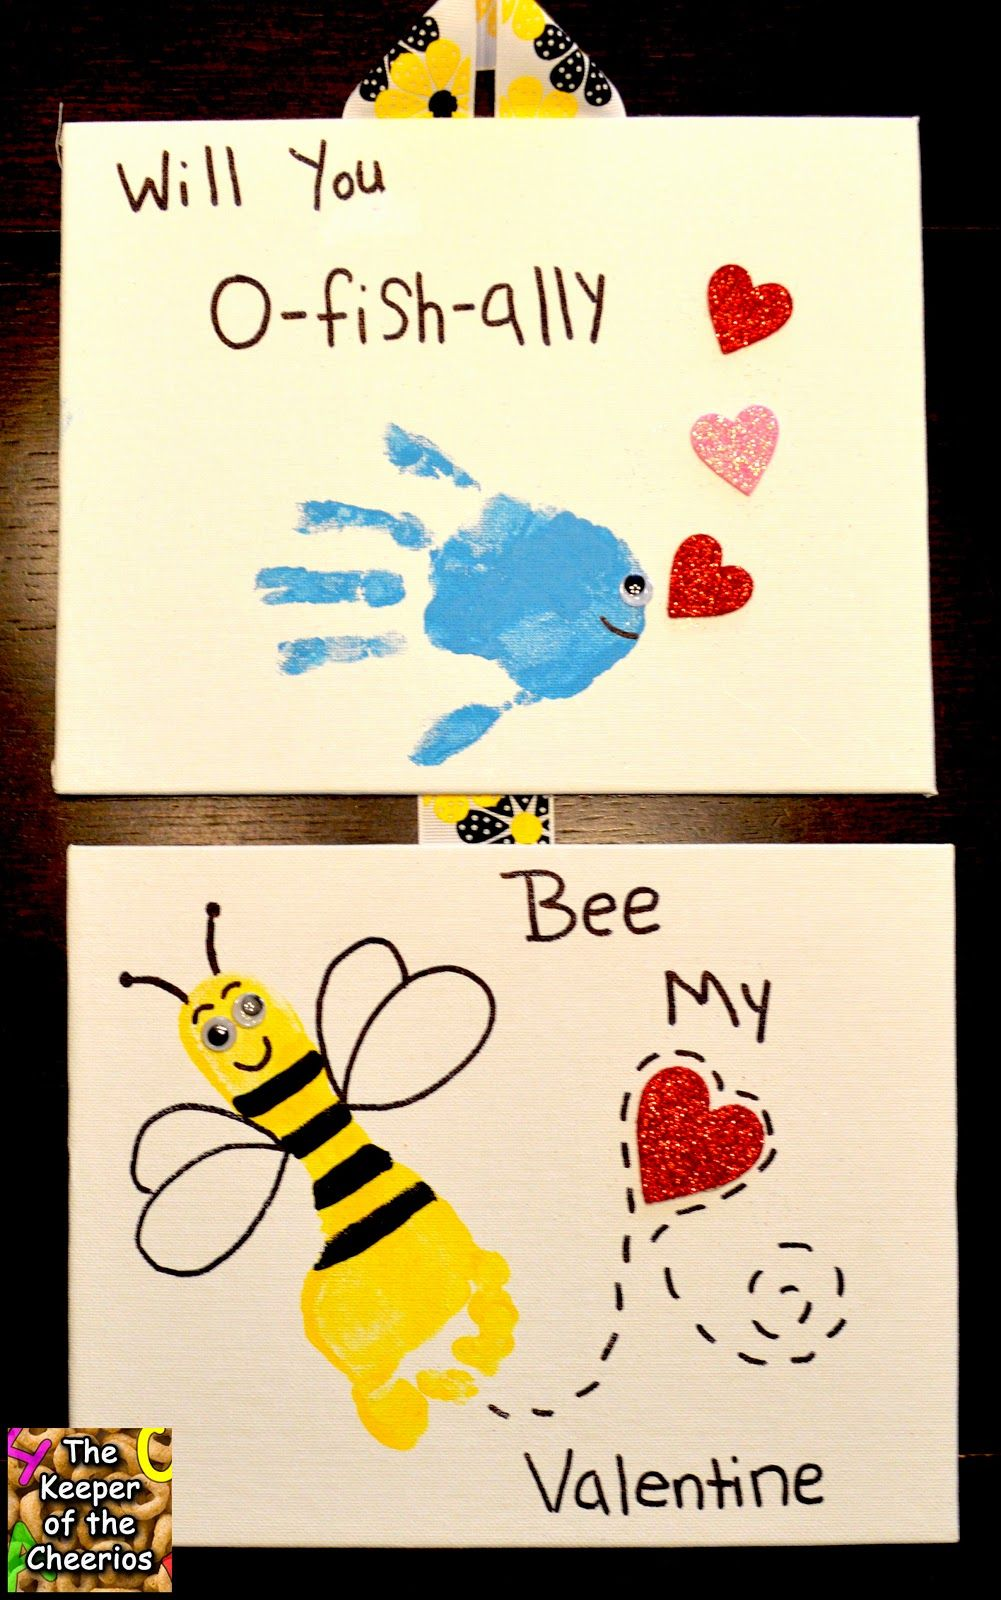 Valentines Day Hand And Footprints Will You O Fish Ally Bee My